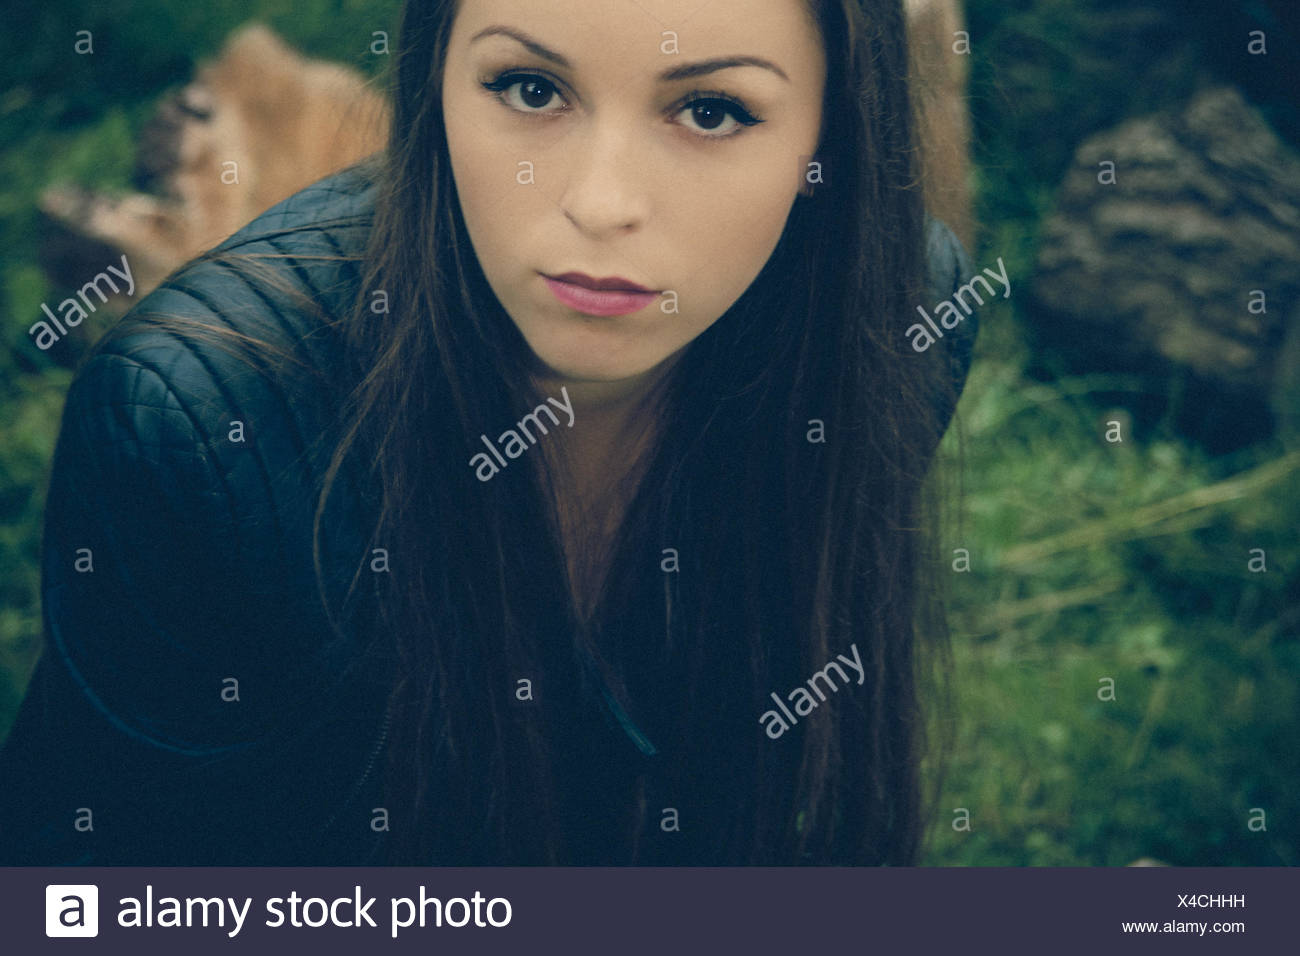 Portrait Of Beautiful Young Woman Wearing Black Leather Jacket In Forest - Stock Image